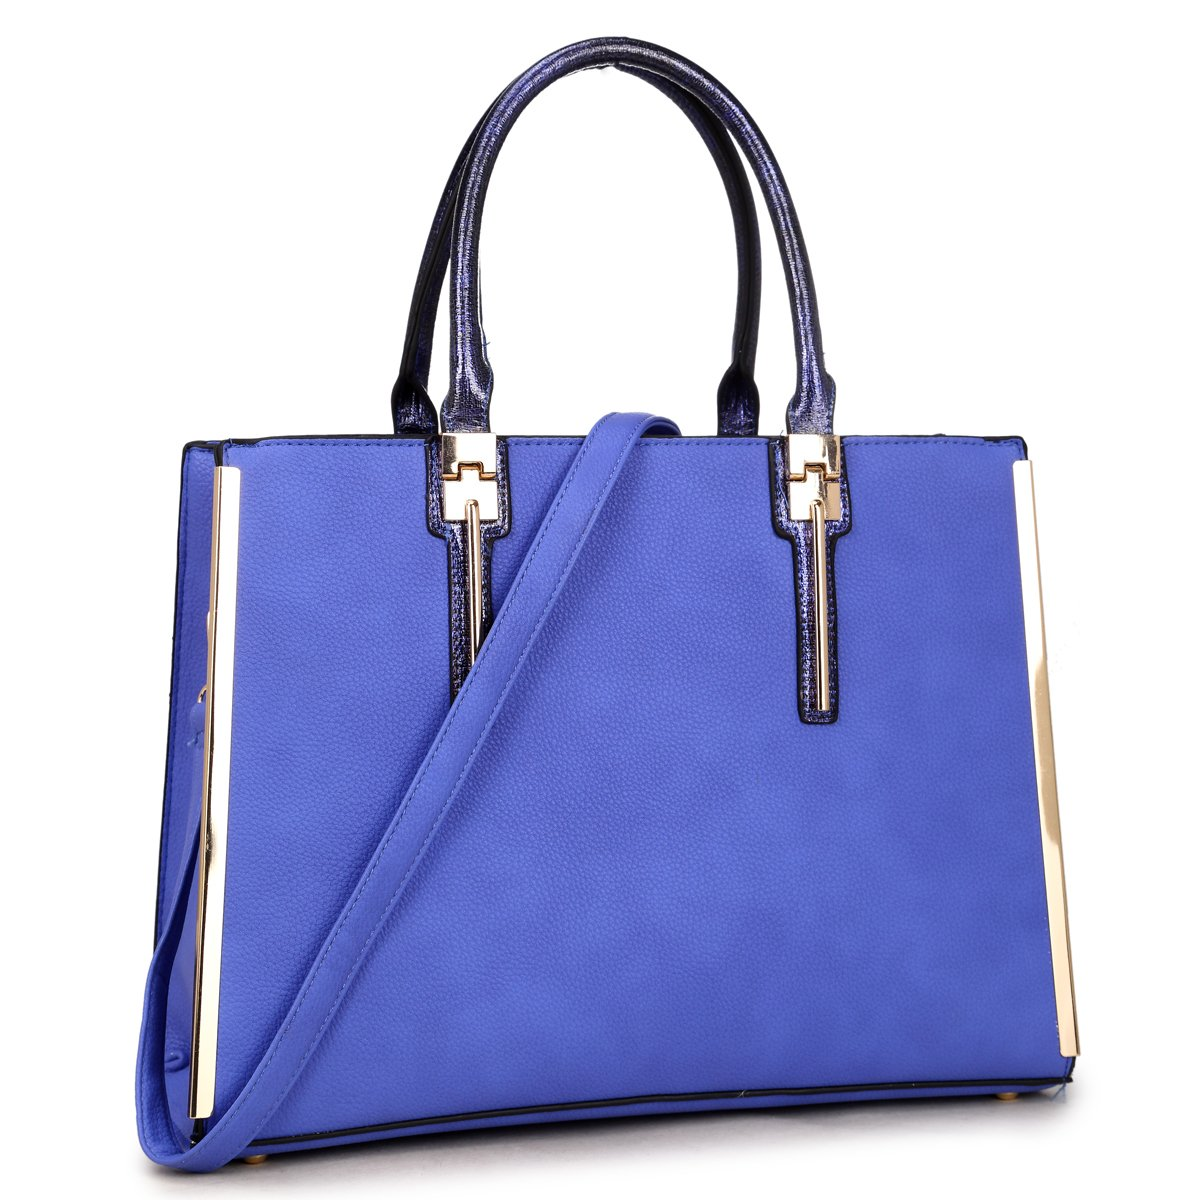 New Women Handbag Faux Leather Satchel Bags Medium Purse Briefcase (Royal Blue)